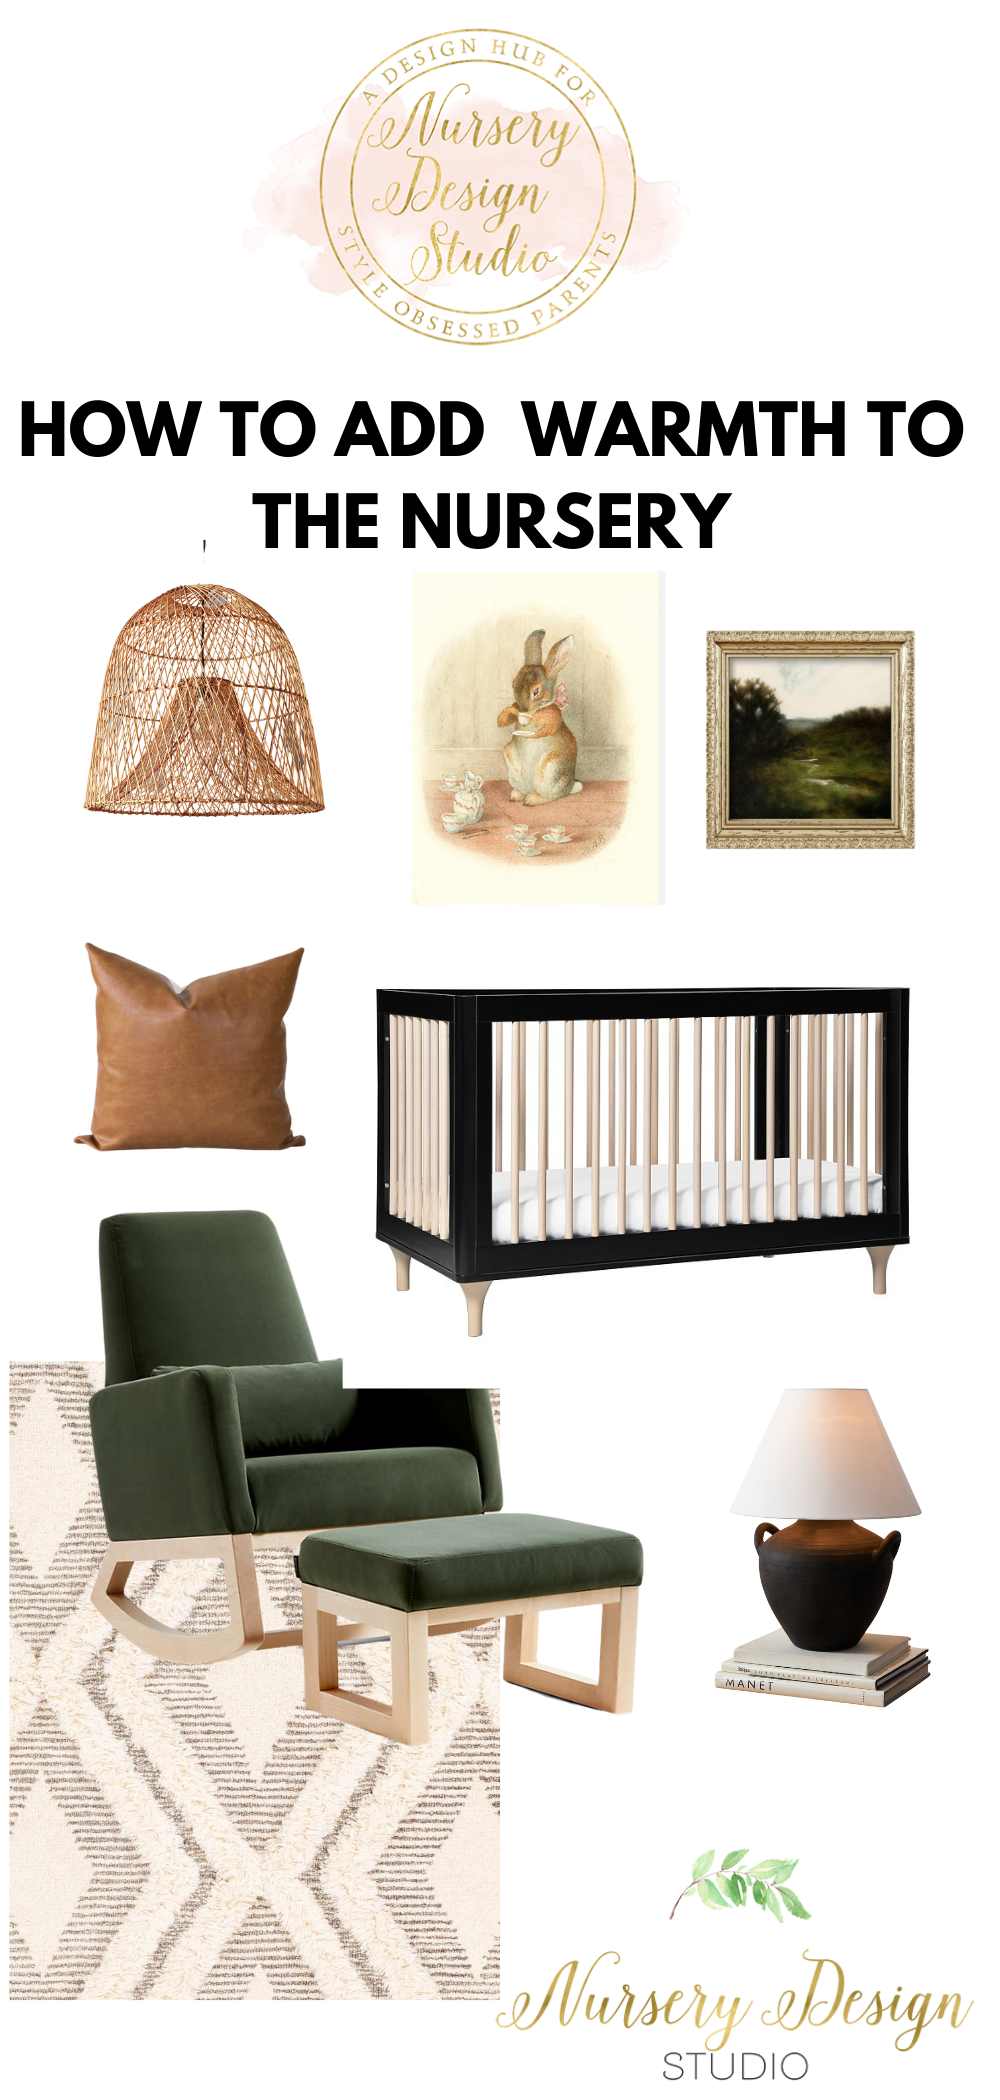 HOW TO ADD warm tones to the nursery